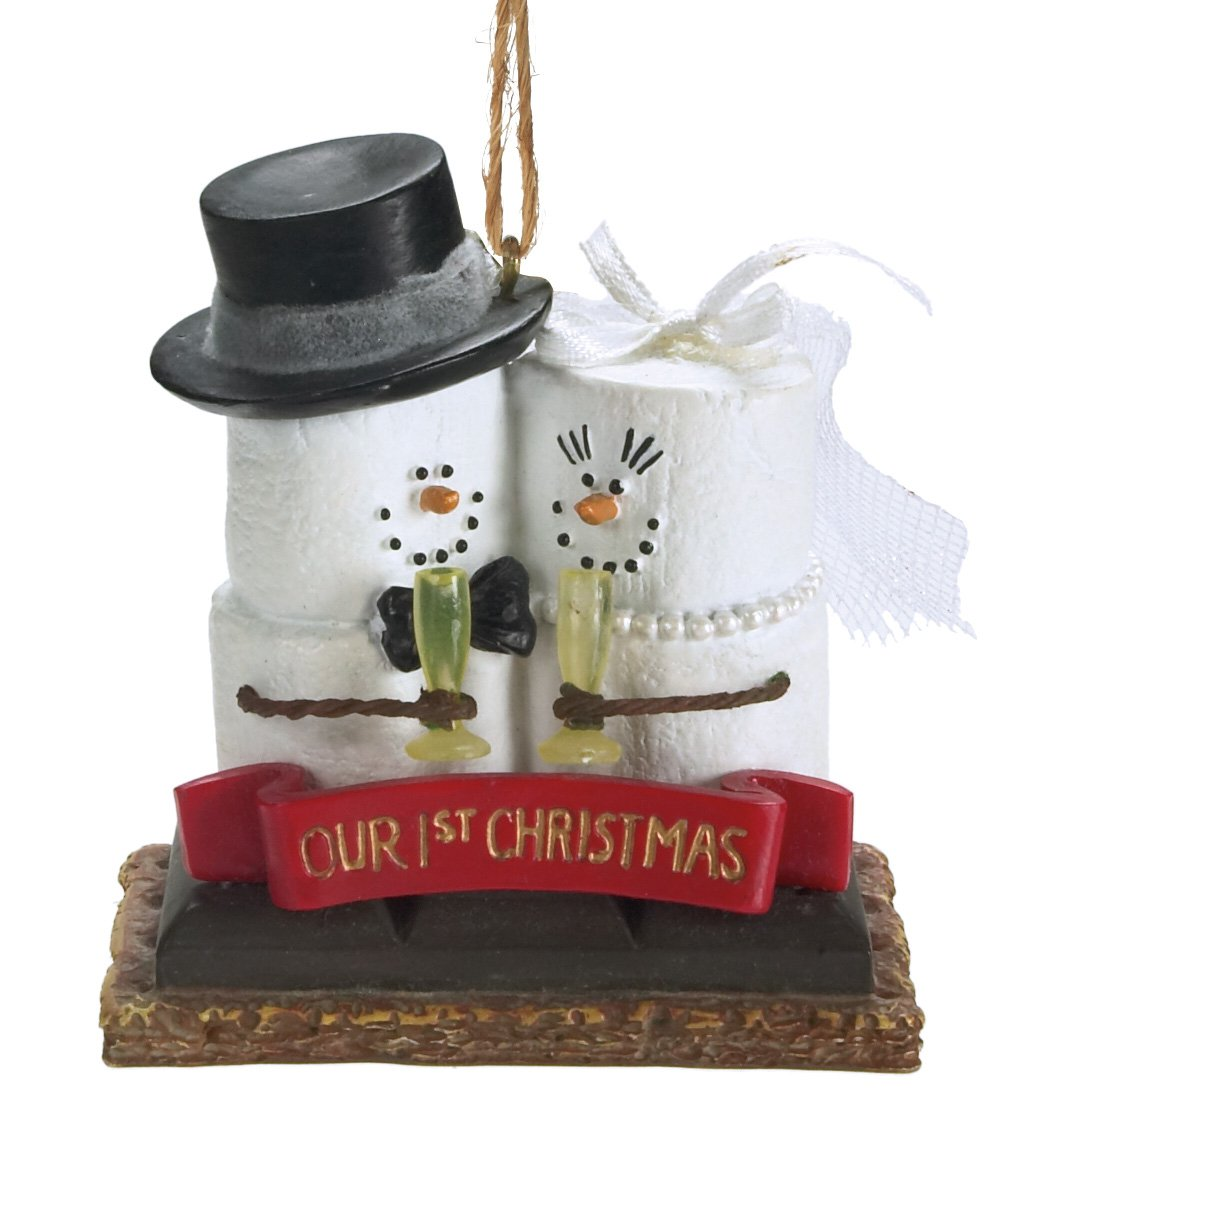 Amazon.com: S'mores 'Our 1st Christmas' Resin Christmas Ornament ...